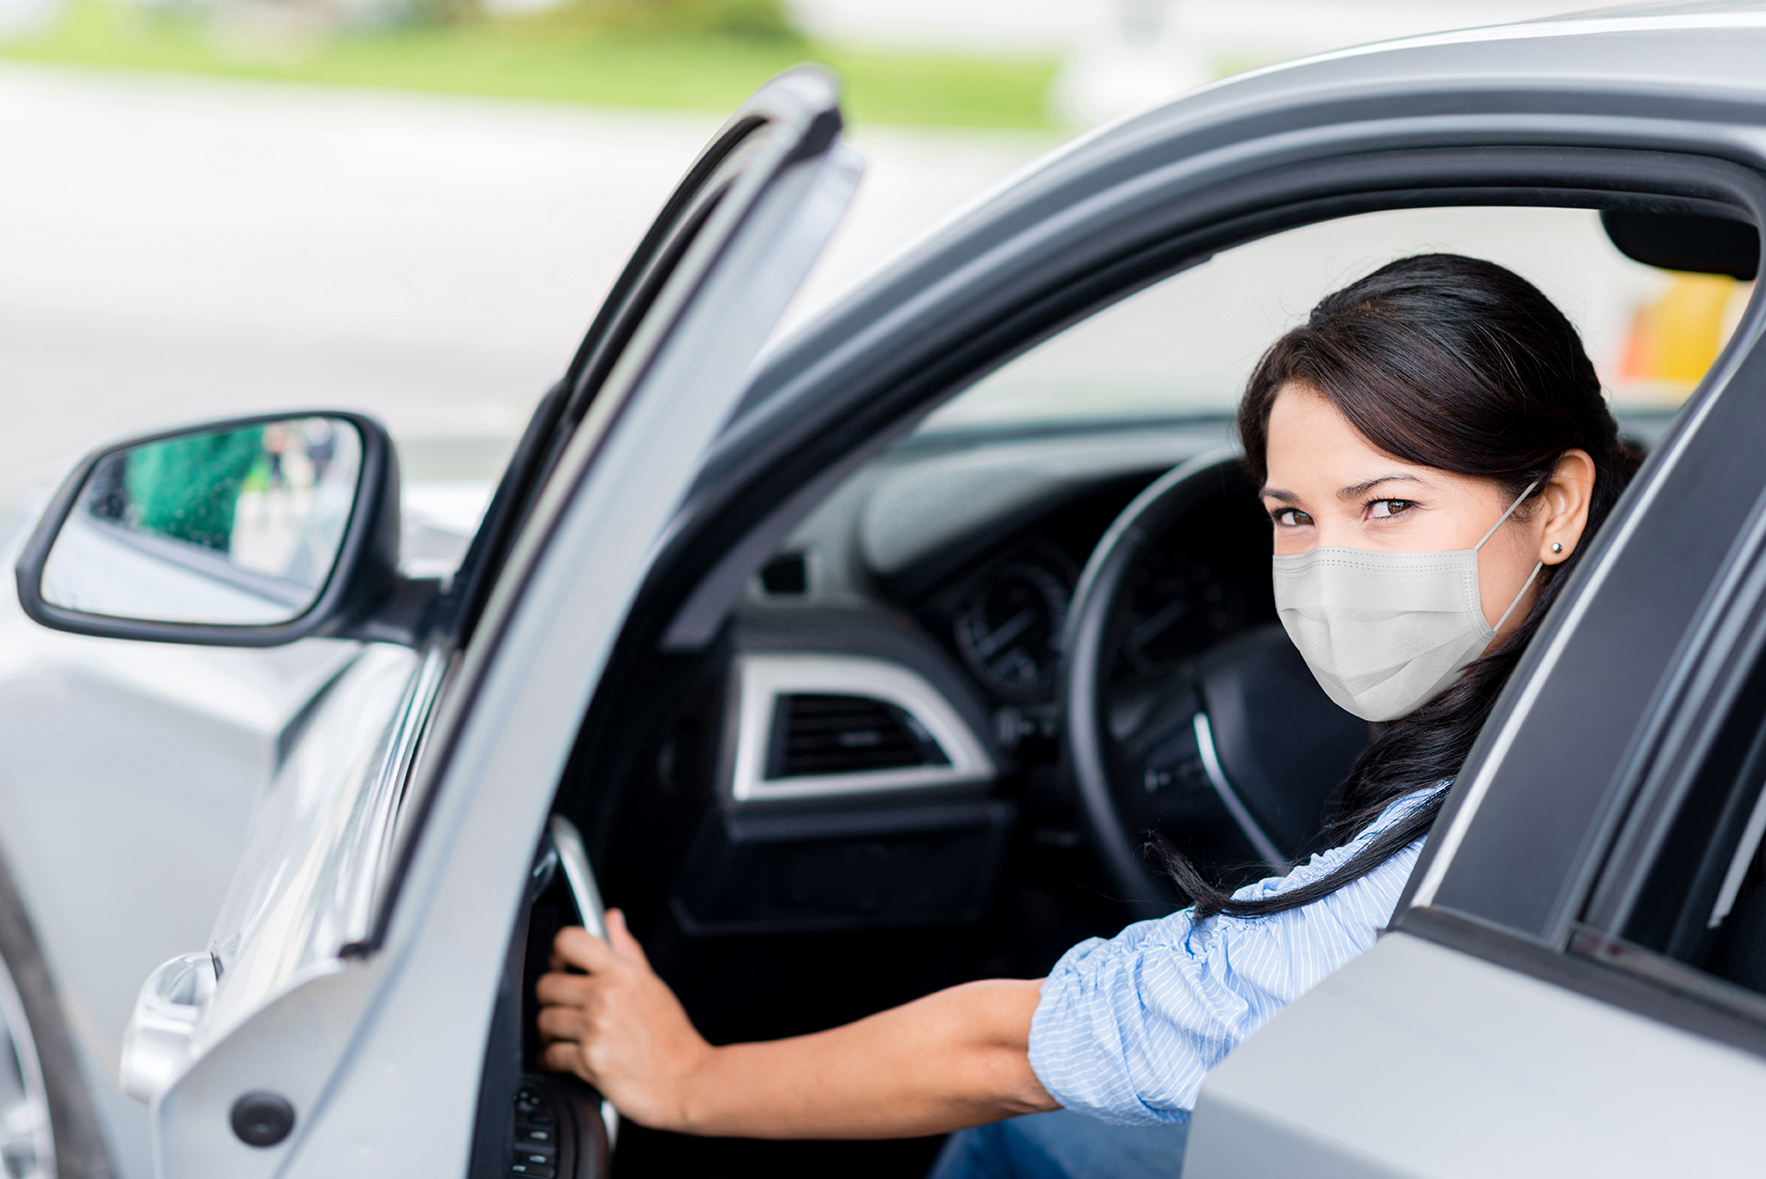 Woman getting out of the car to refuel it and wearing a facemask at the gas station – COVID-19 pandemic concepts